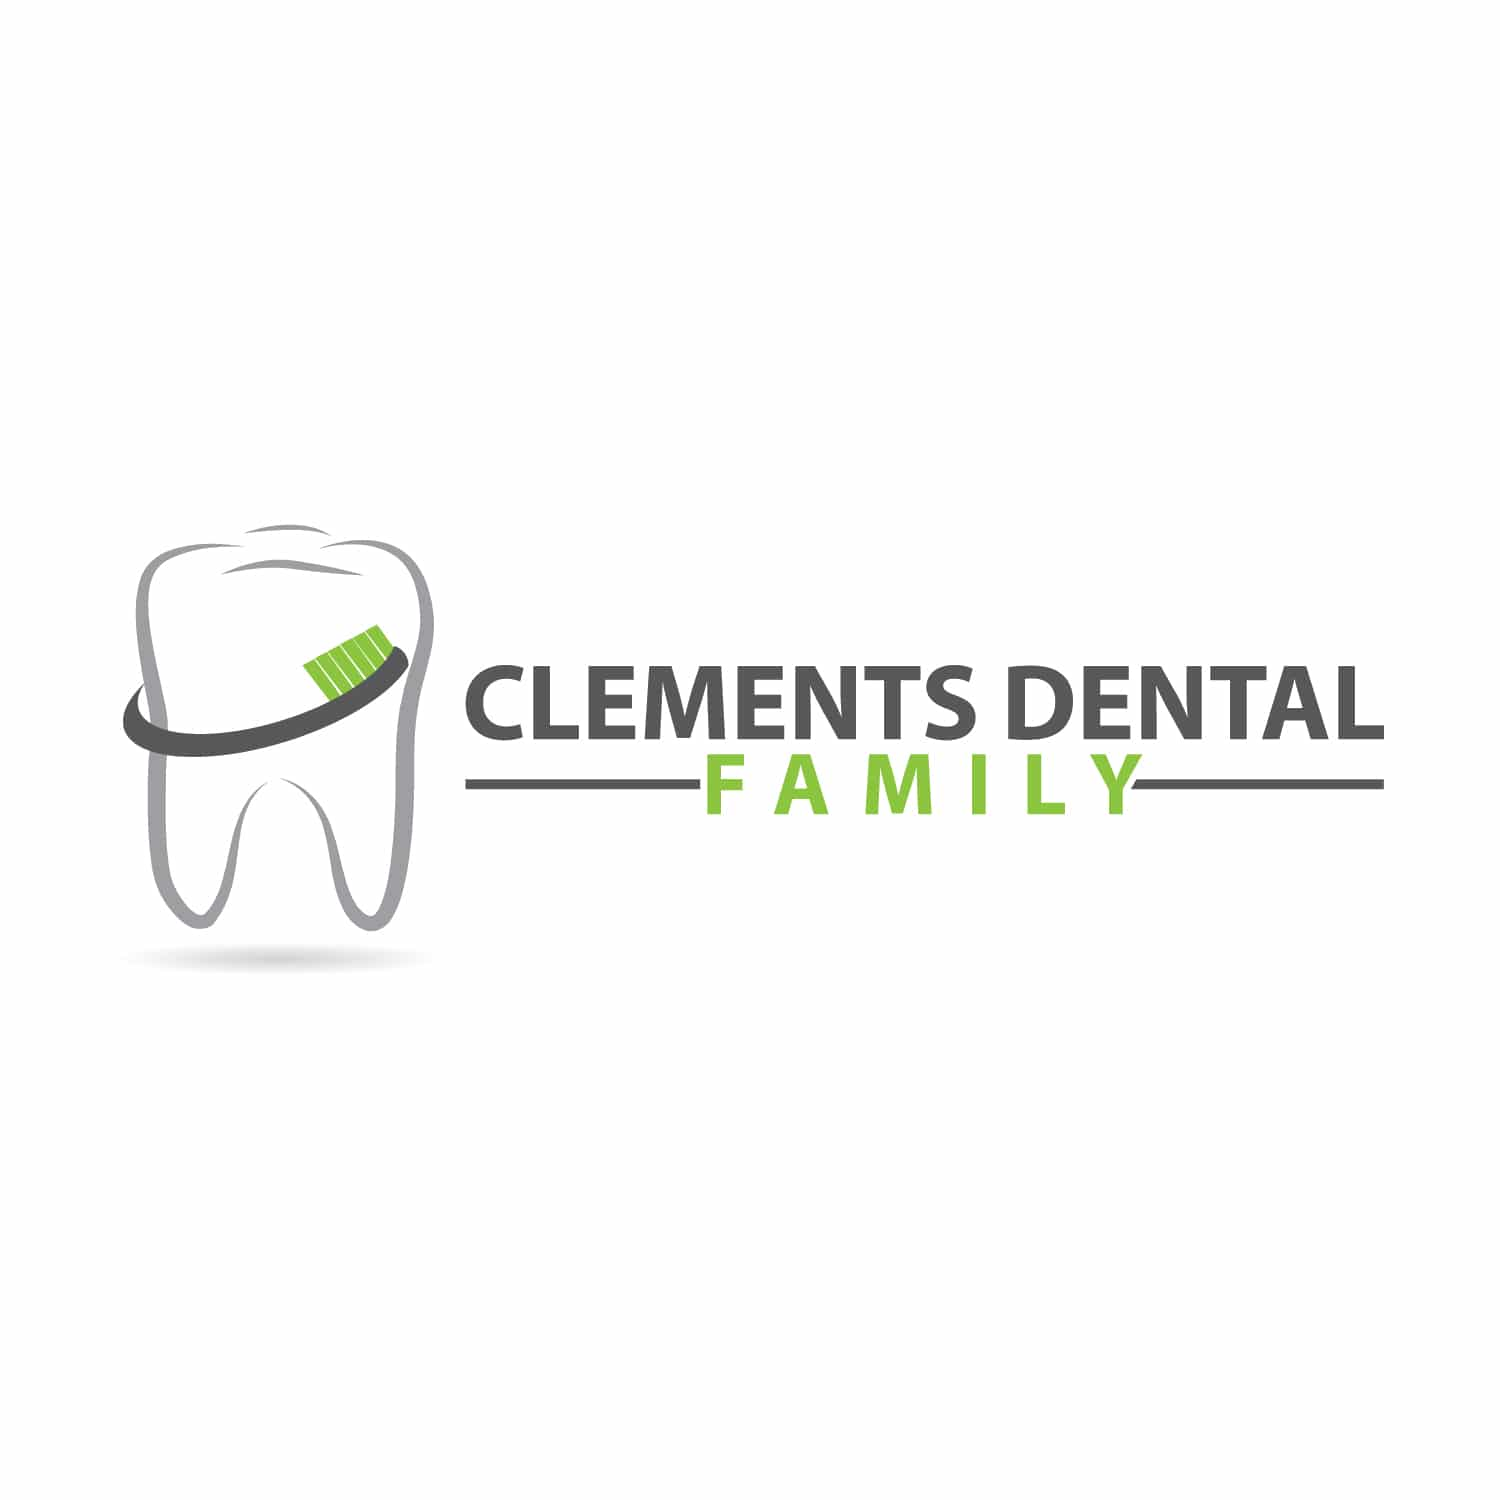 https://www.whittierplf.org/wp-content/uploads/ClementsDentalFamily_CustomLogoDesign_R2_Opt1.jpg